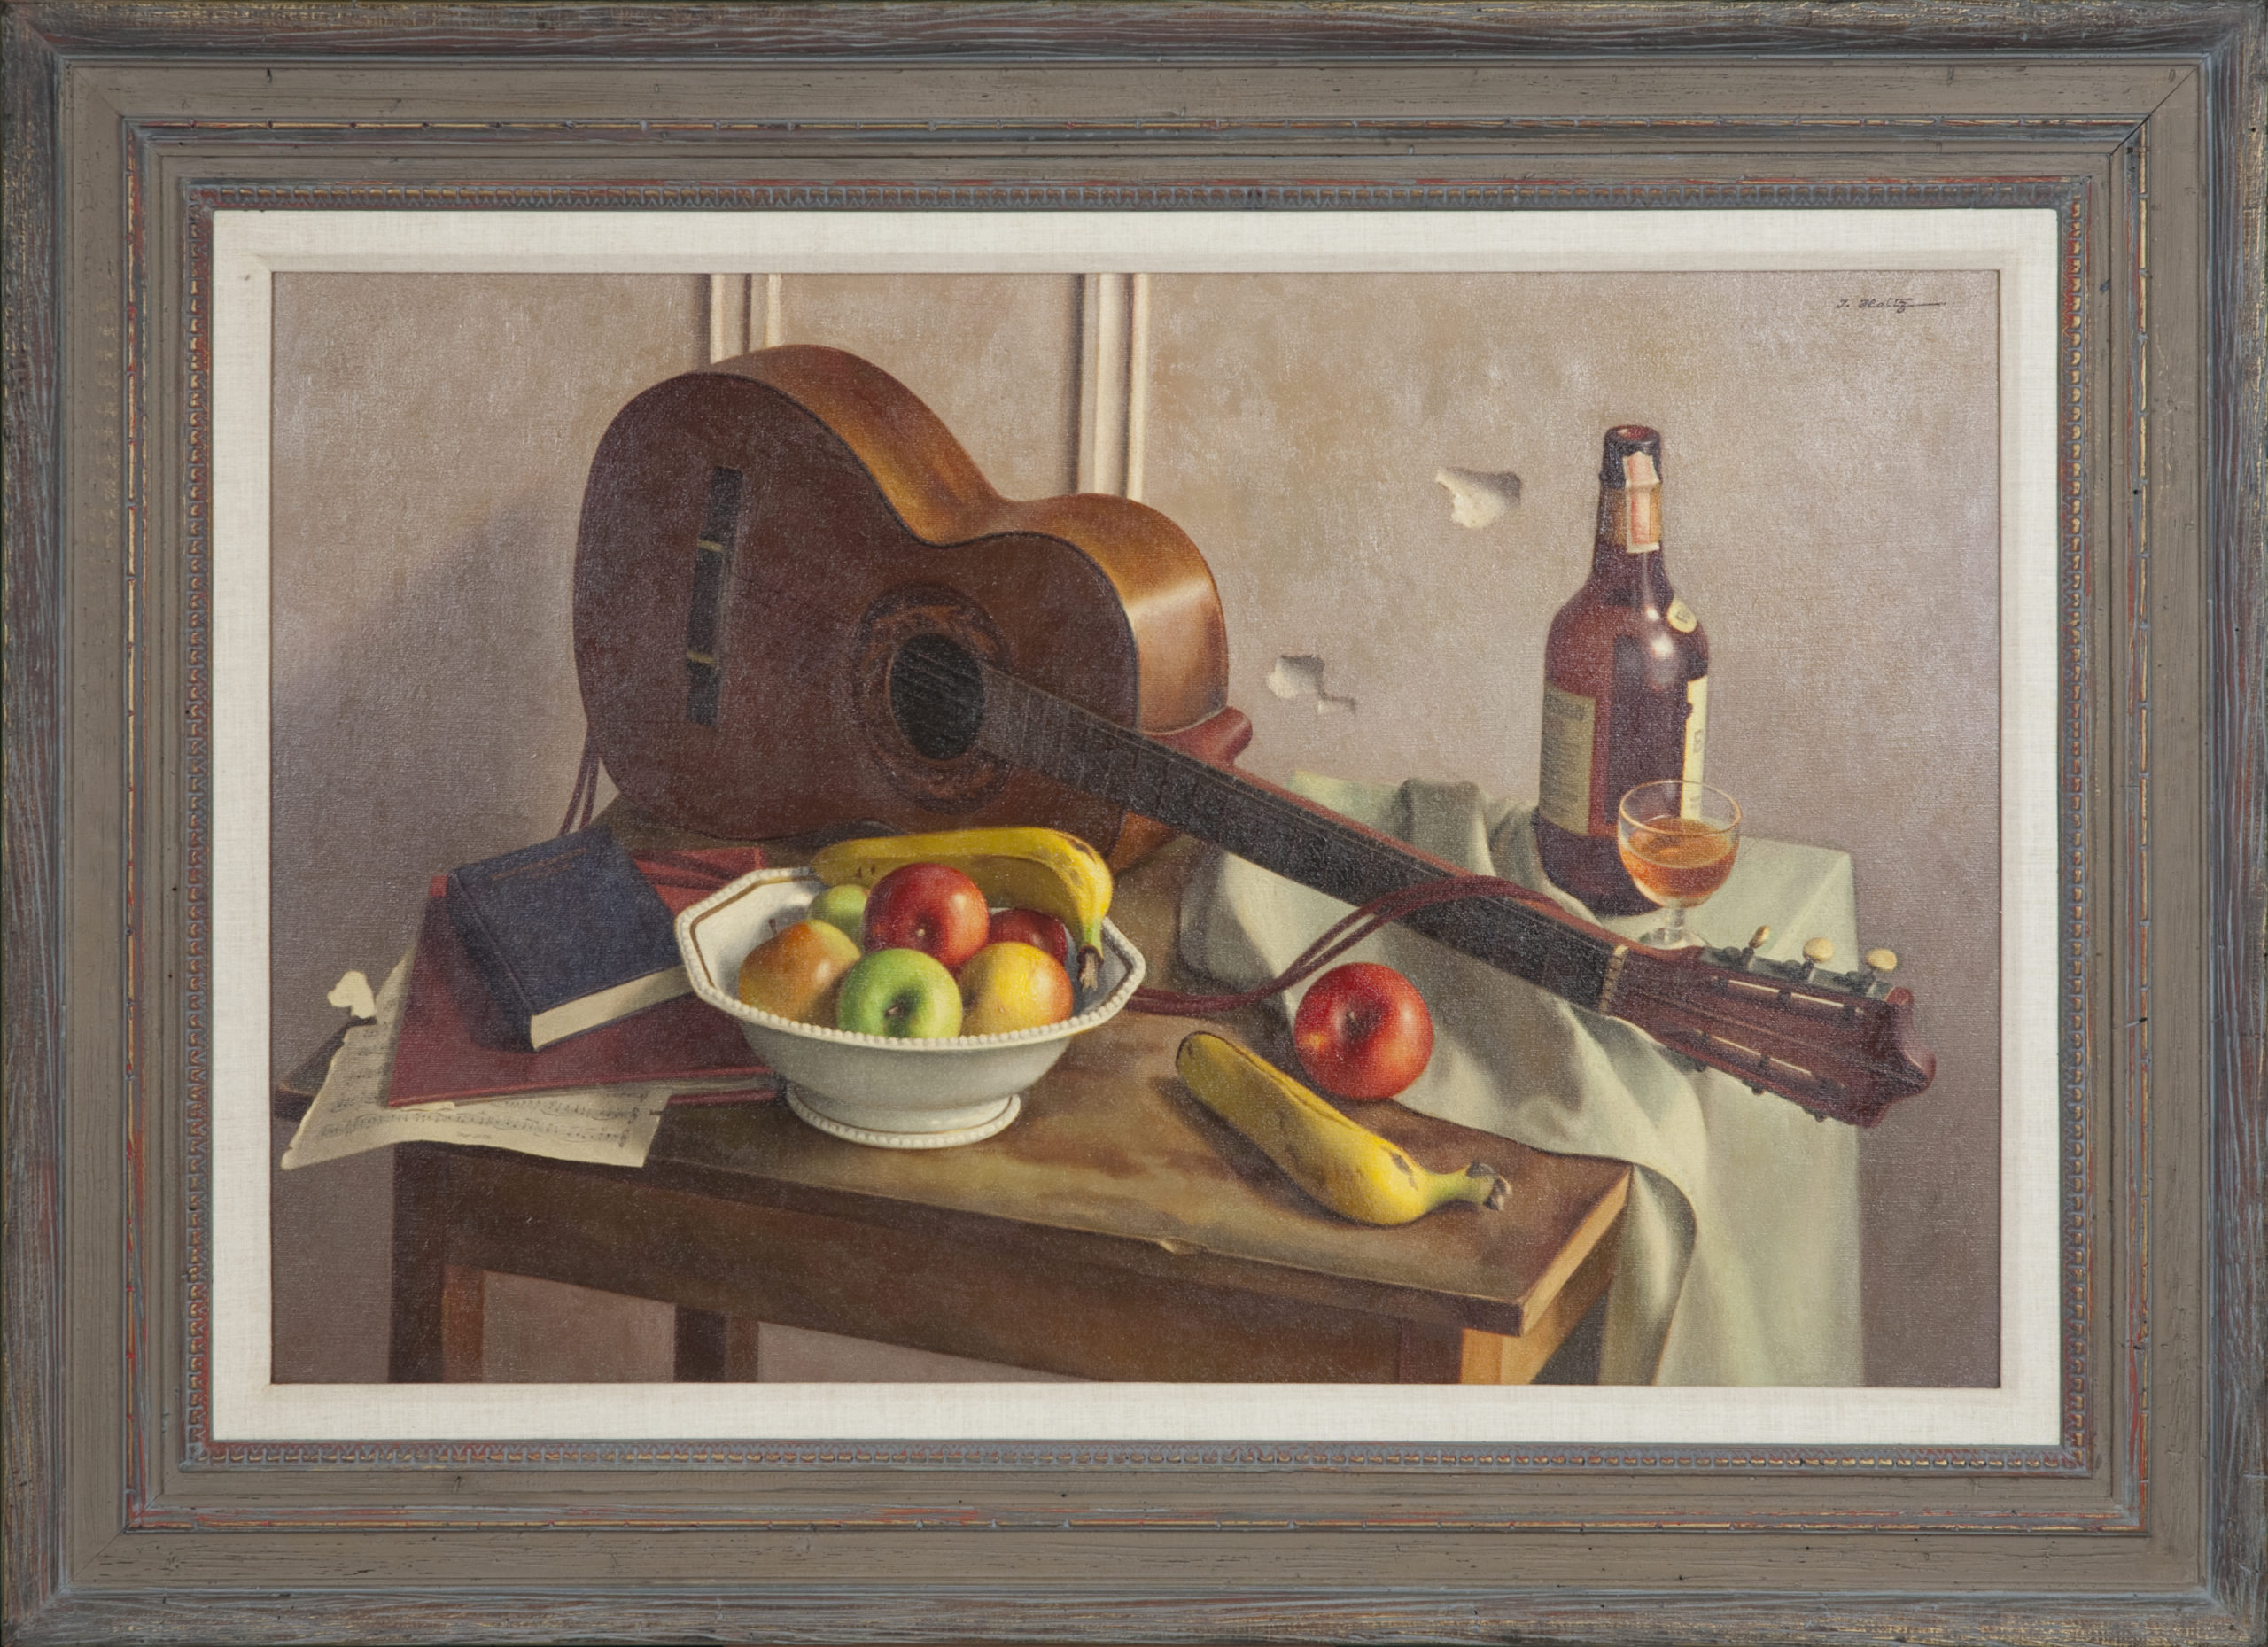 187 Still Life Guitar and Fruit 1953 - Oil on Canvas - 44 x 25.75 - Frame: 51.25 x 37.5 x 2.5